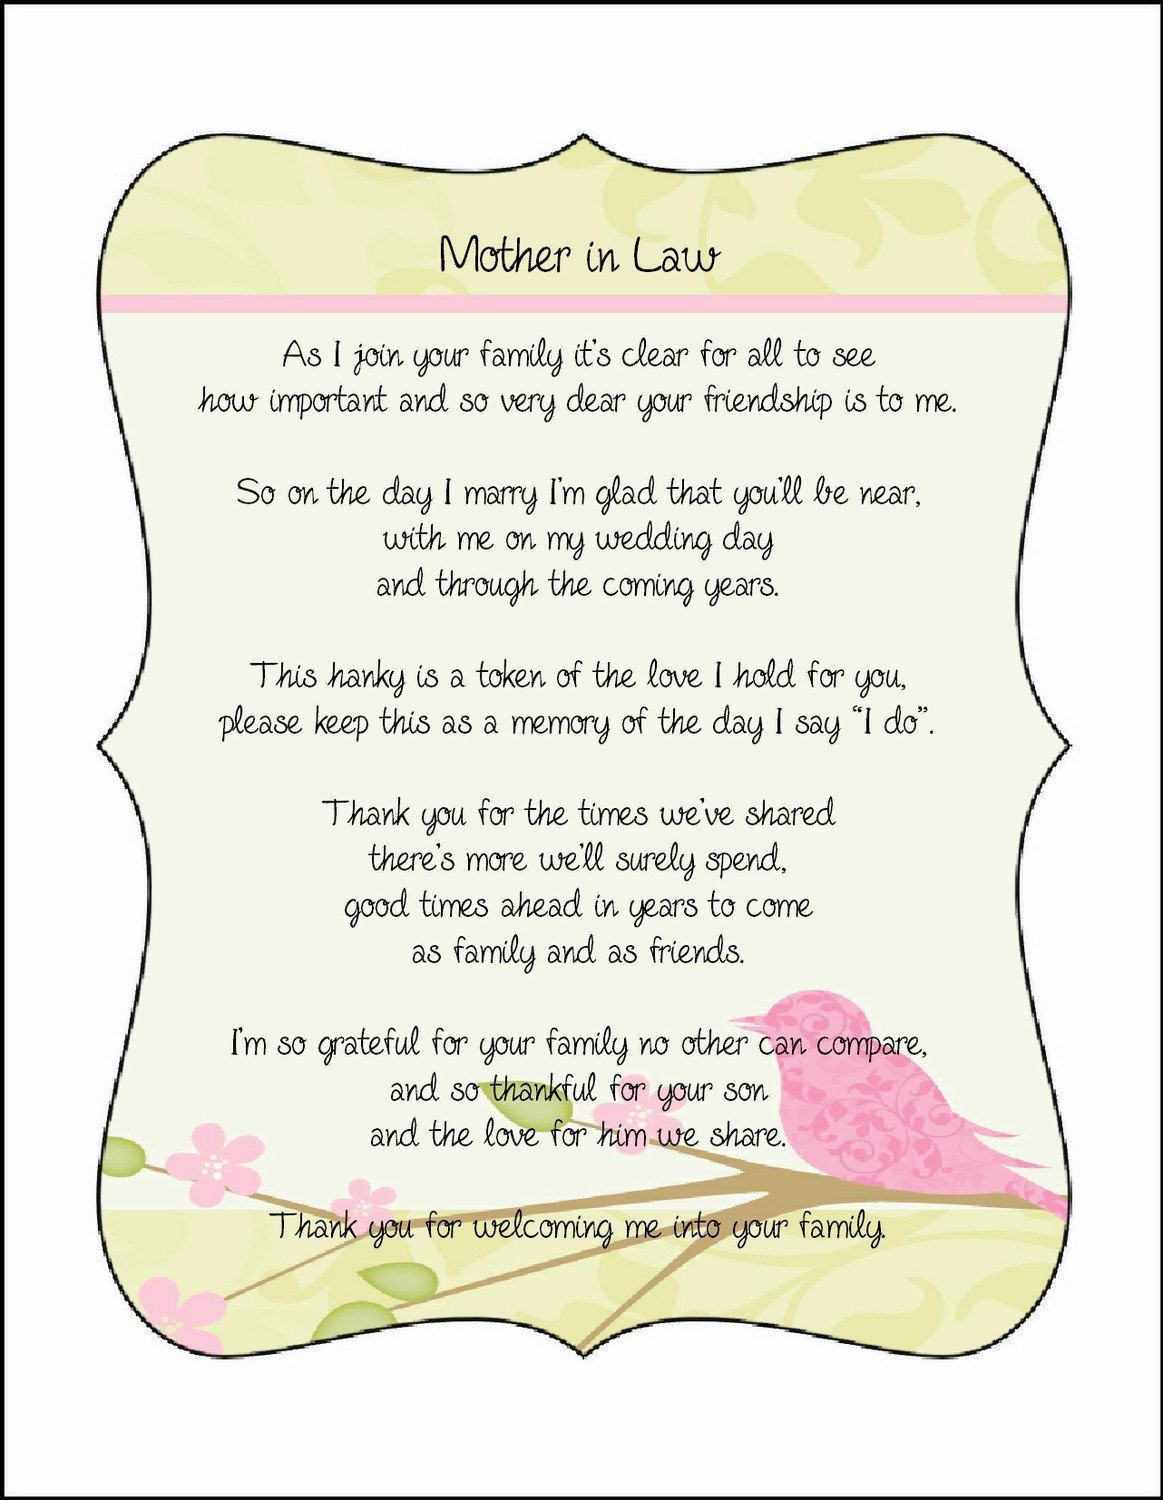 Mother in Law Poem Card from Bride great with embroidered handkerchief